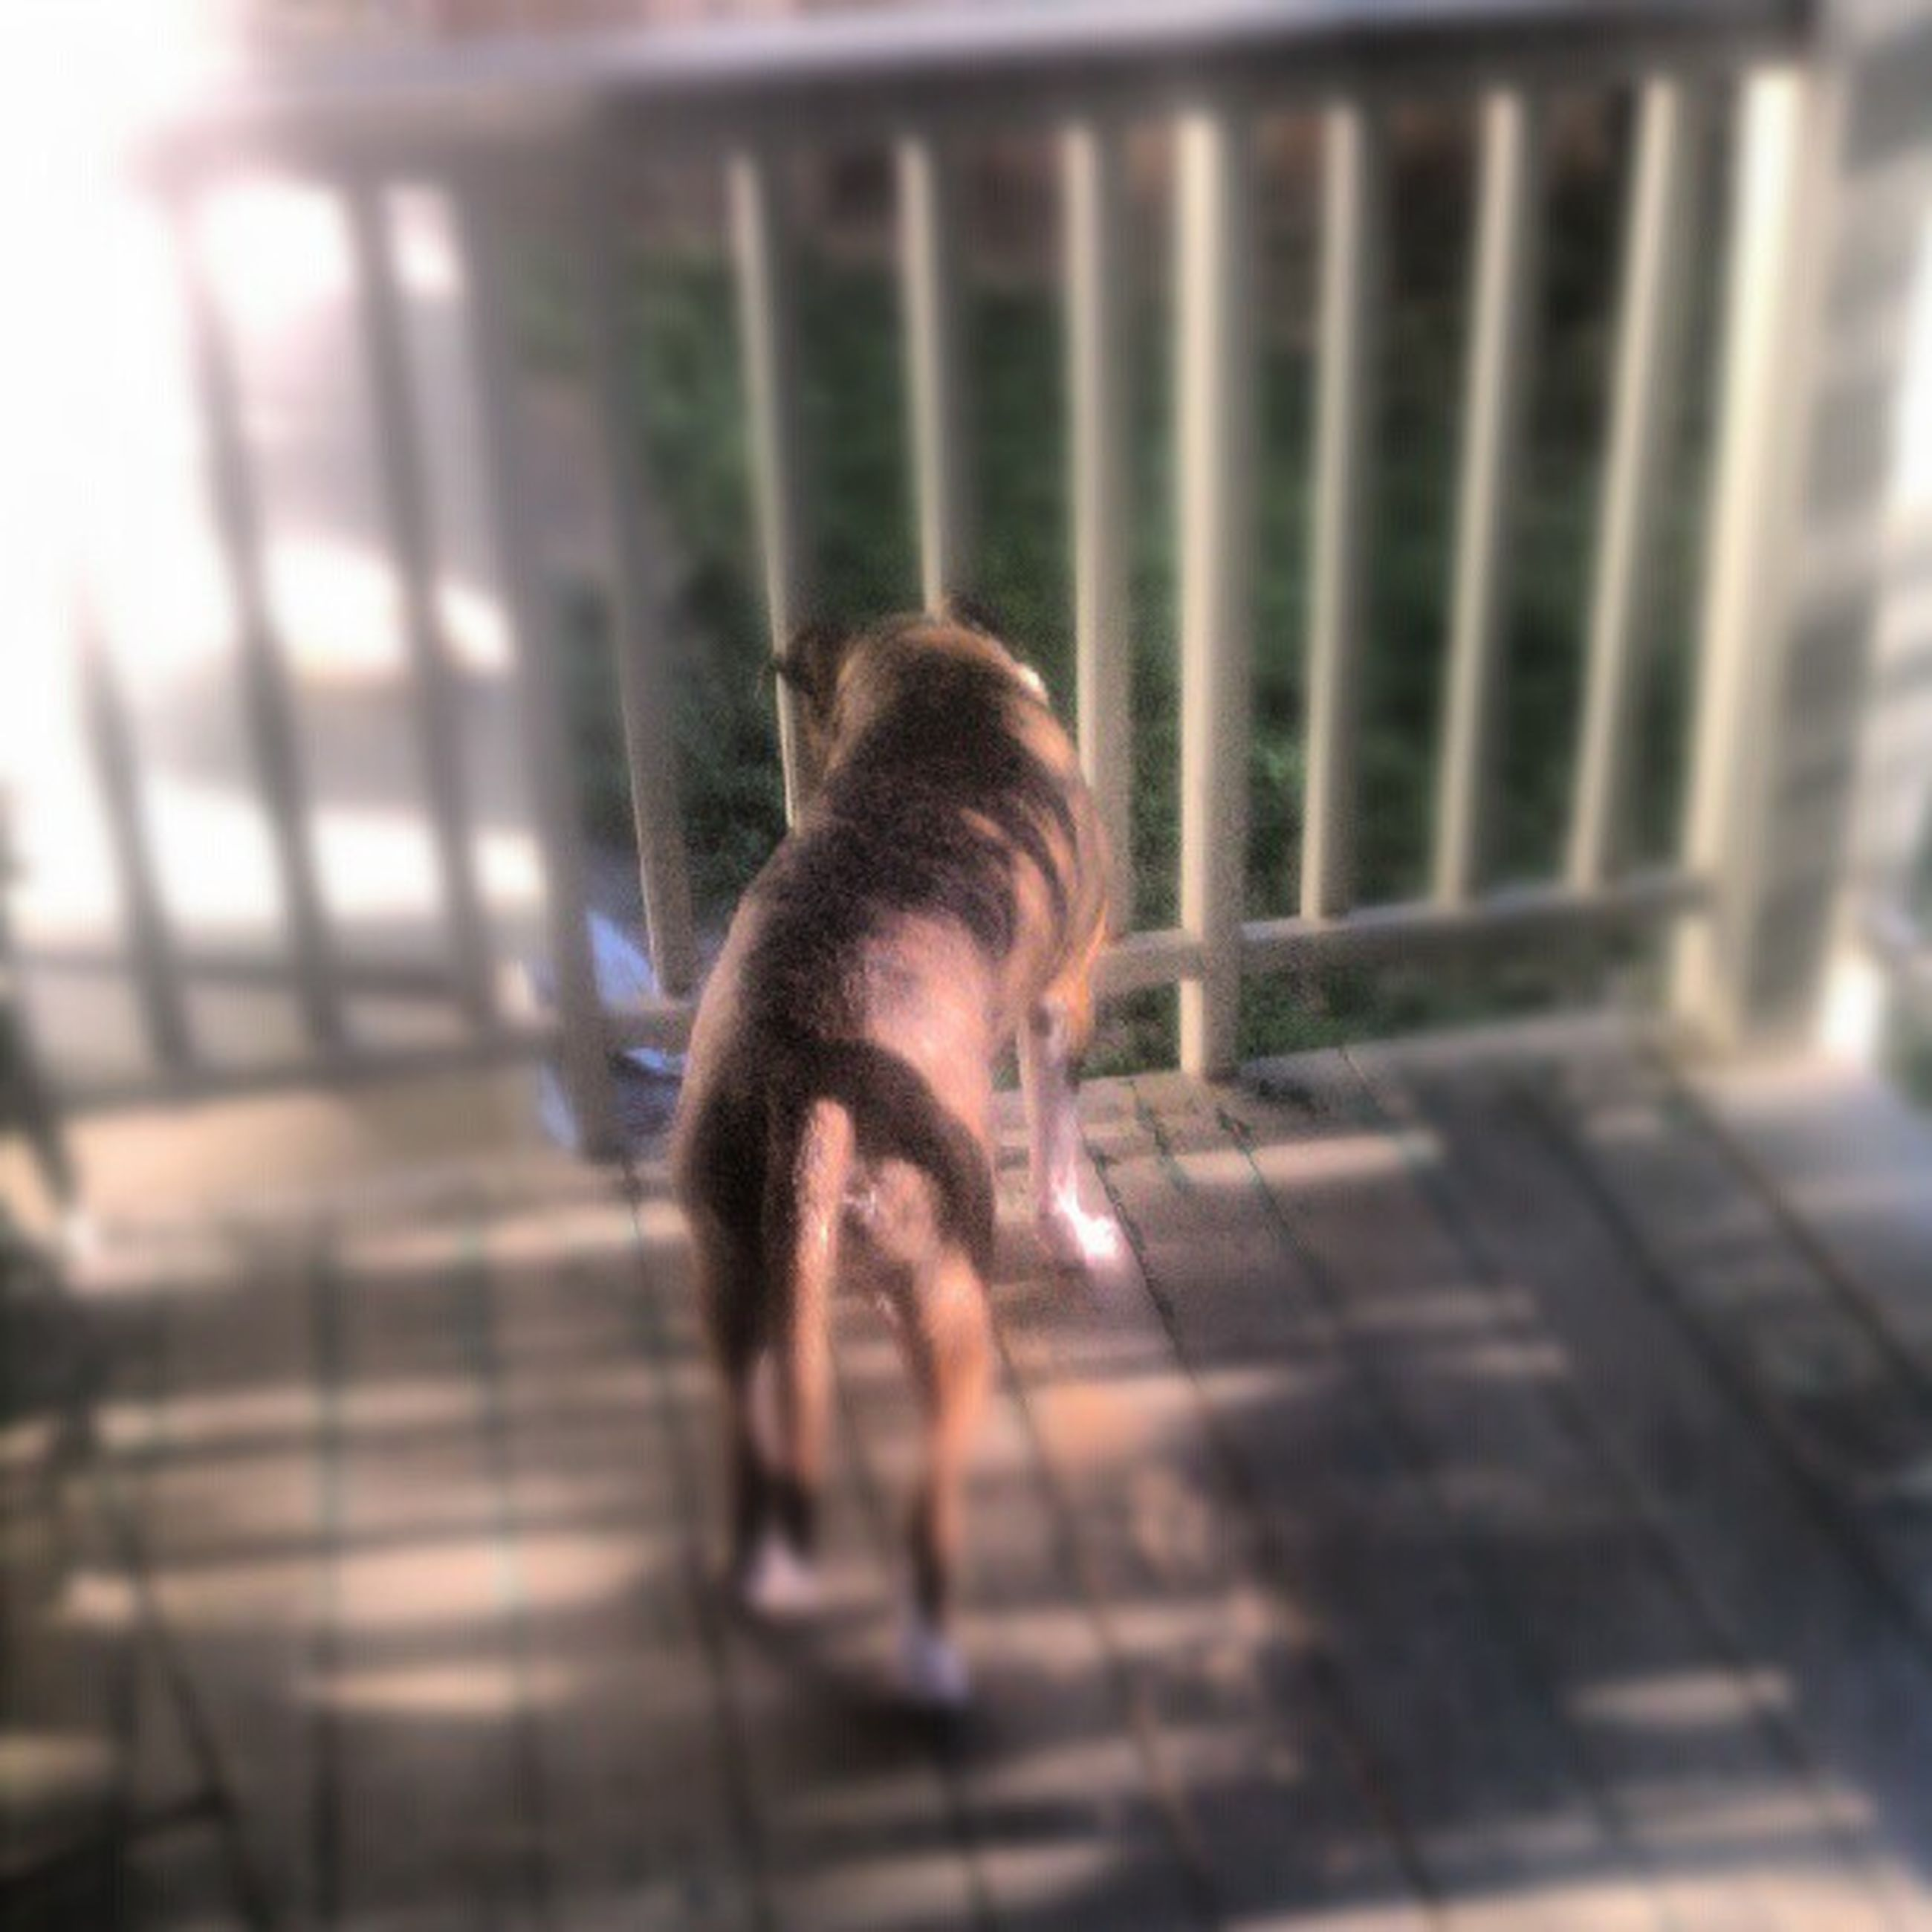 one animal, pets, mammal, full length, animal themes, domestic animals, dog, indoors, lifestyles, rear view, side view, leisure activity, railing, sitting, focus on foreground, selective focus, day, sunlight